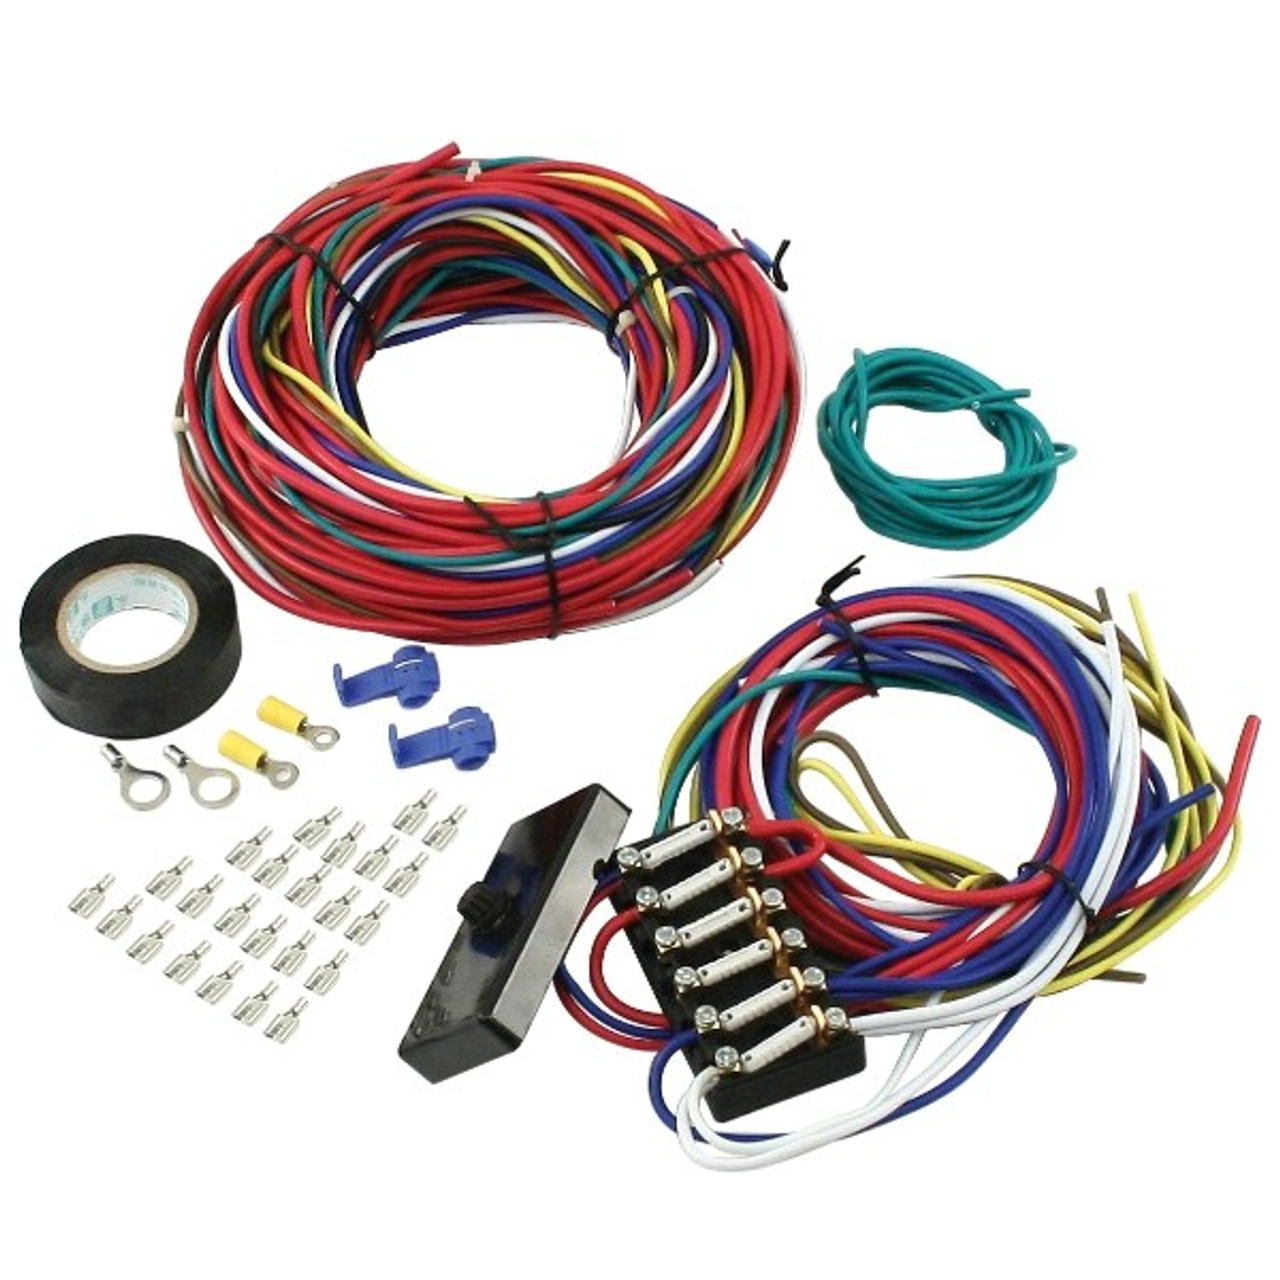 empi wiring harness buggy manx wiring harness dune buggy parts sandrail